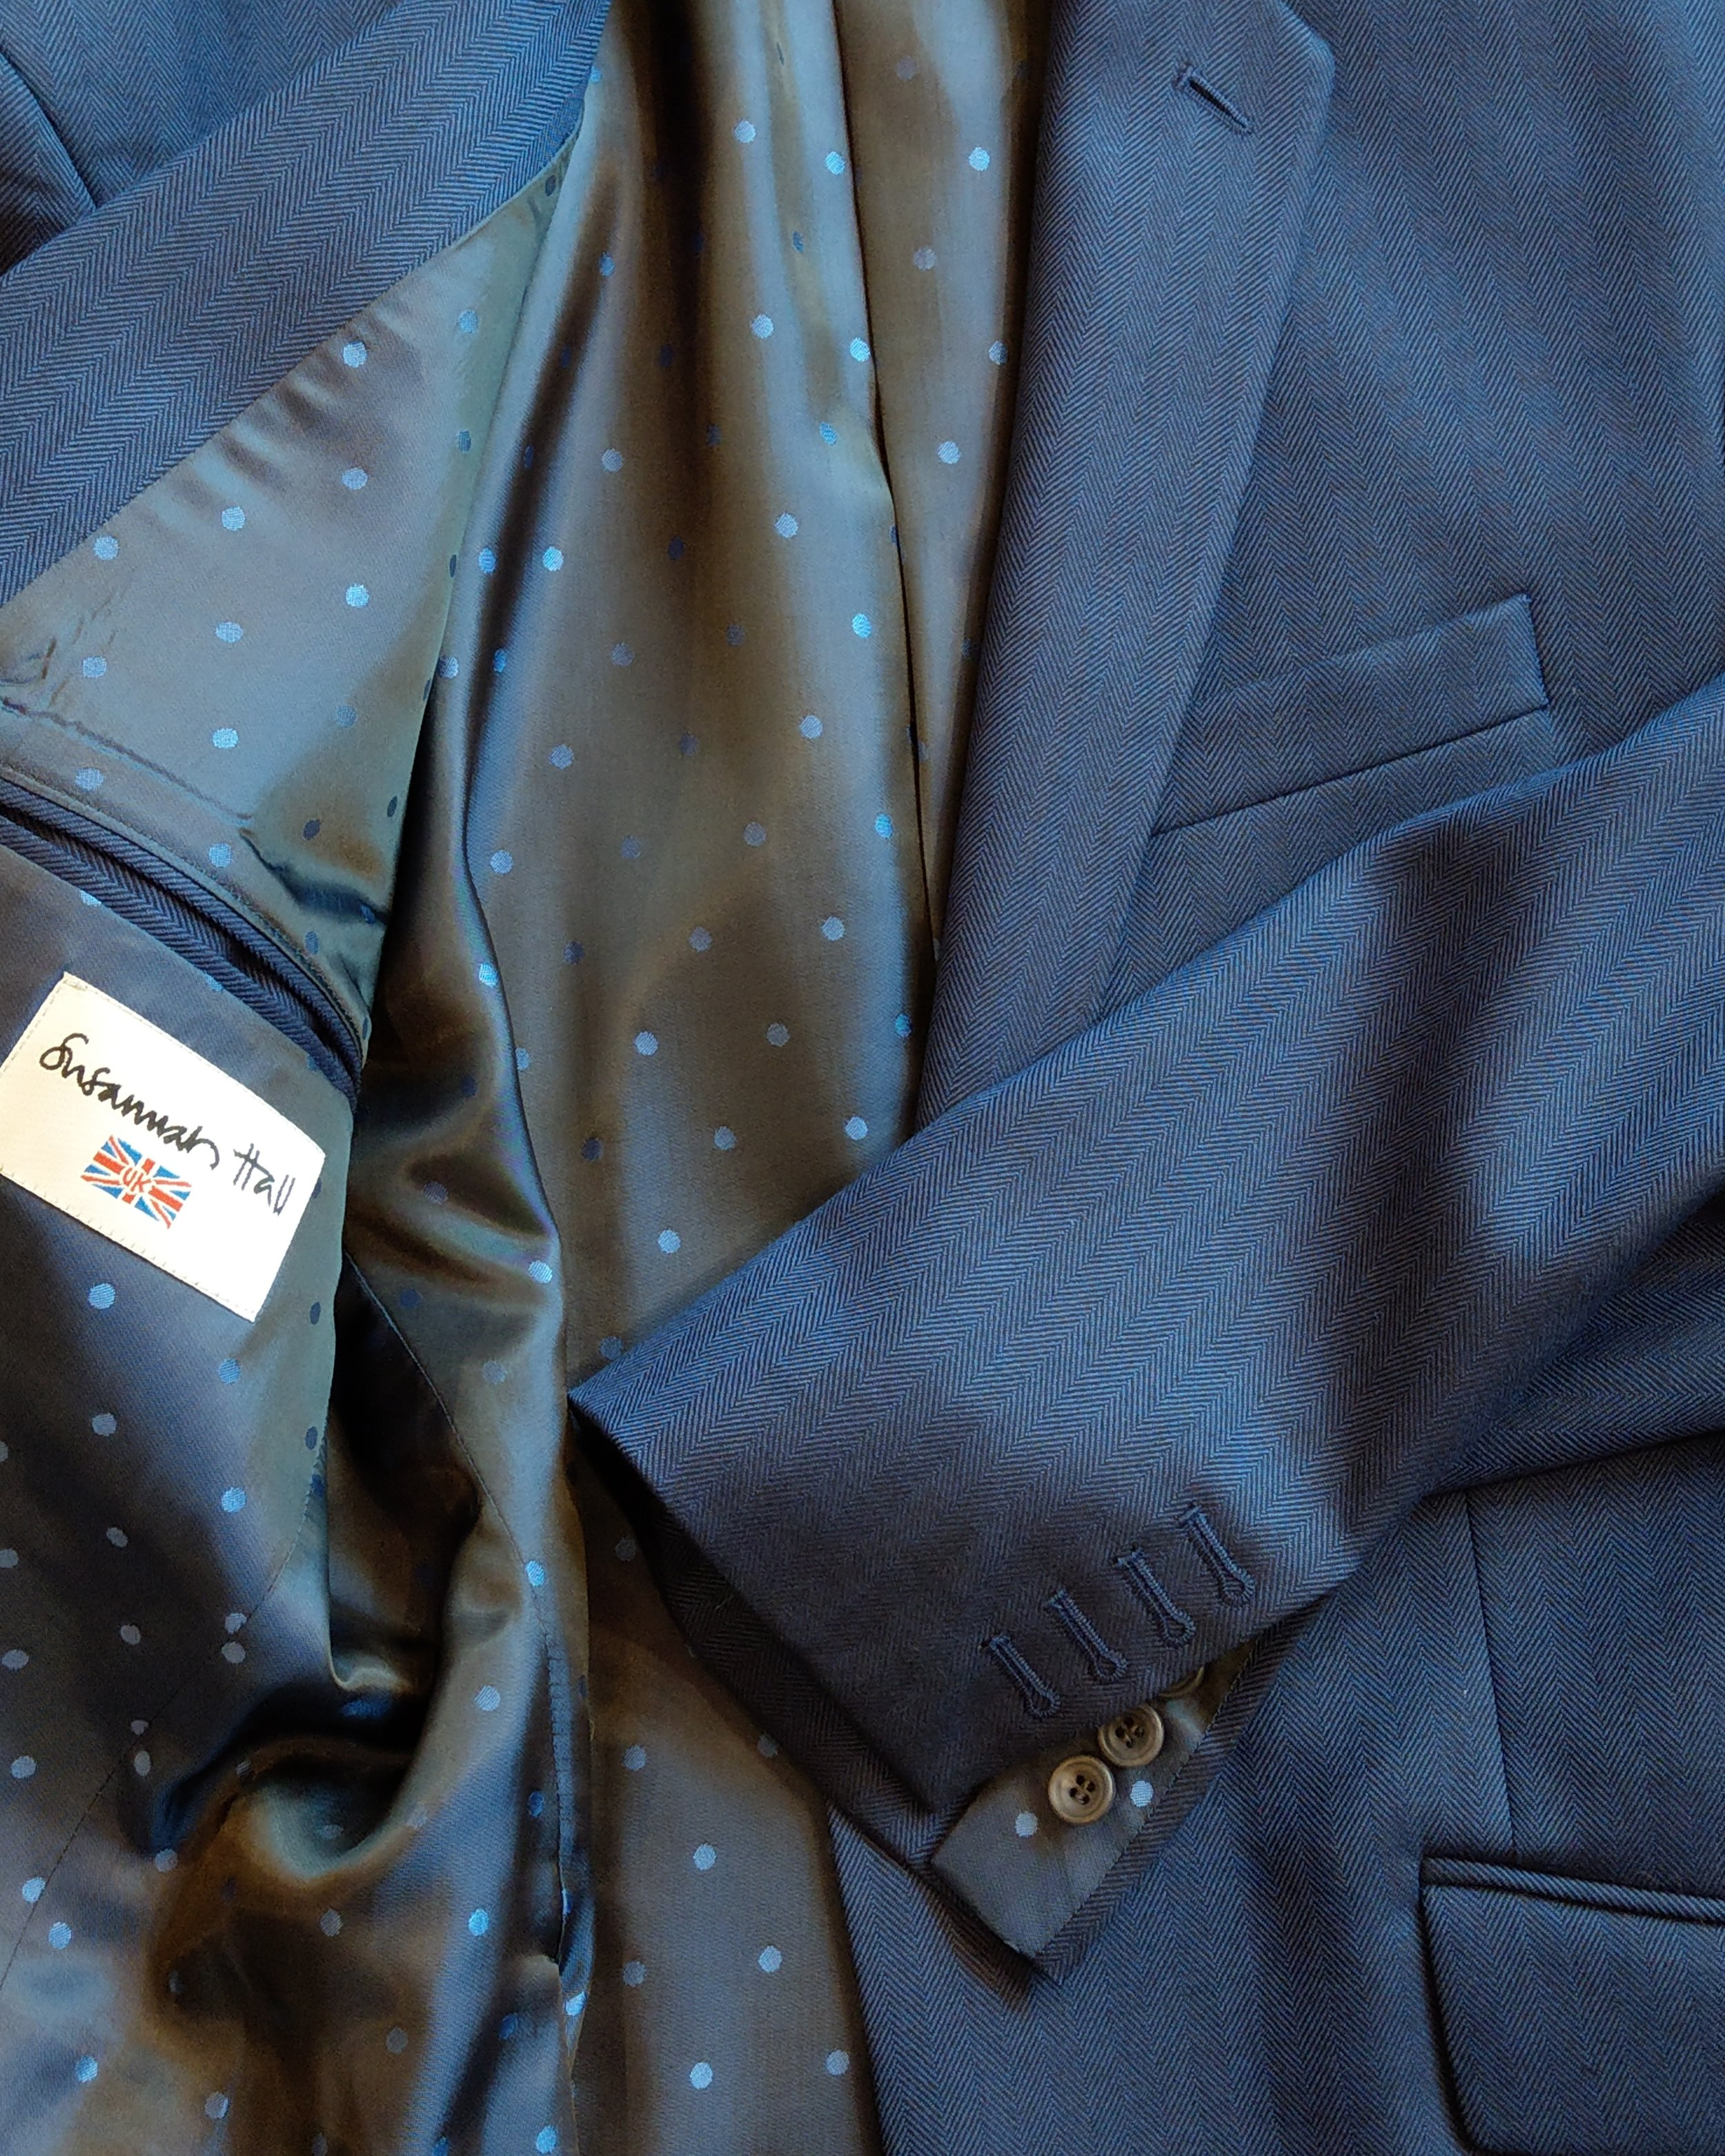 blue-herringbone-suit-bespoke-susannah-hall-tailor-holland-sherry-made-uk-britain.jpg